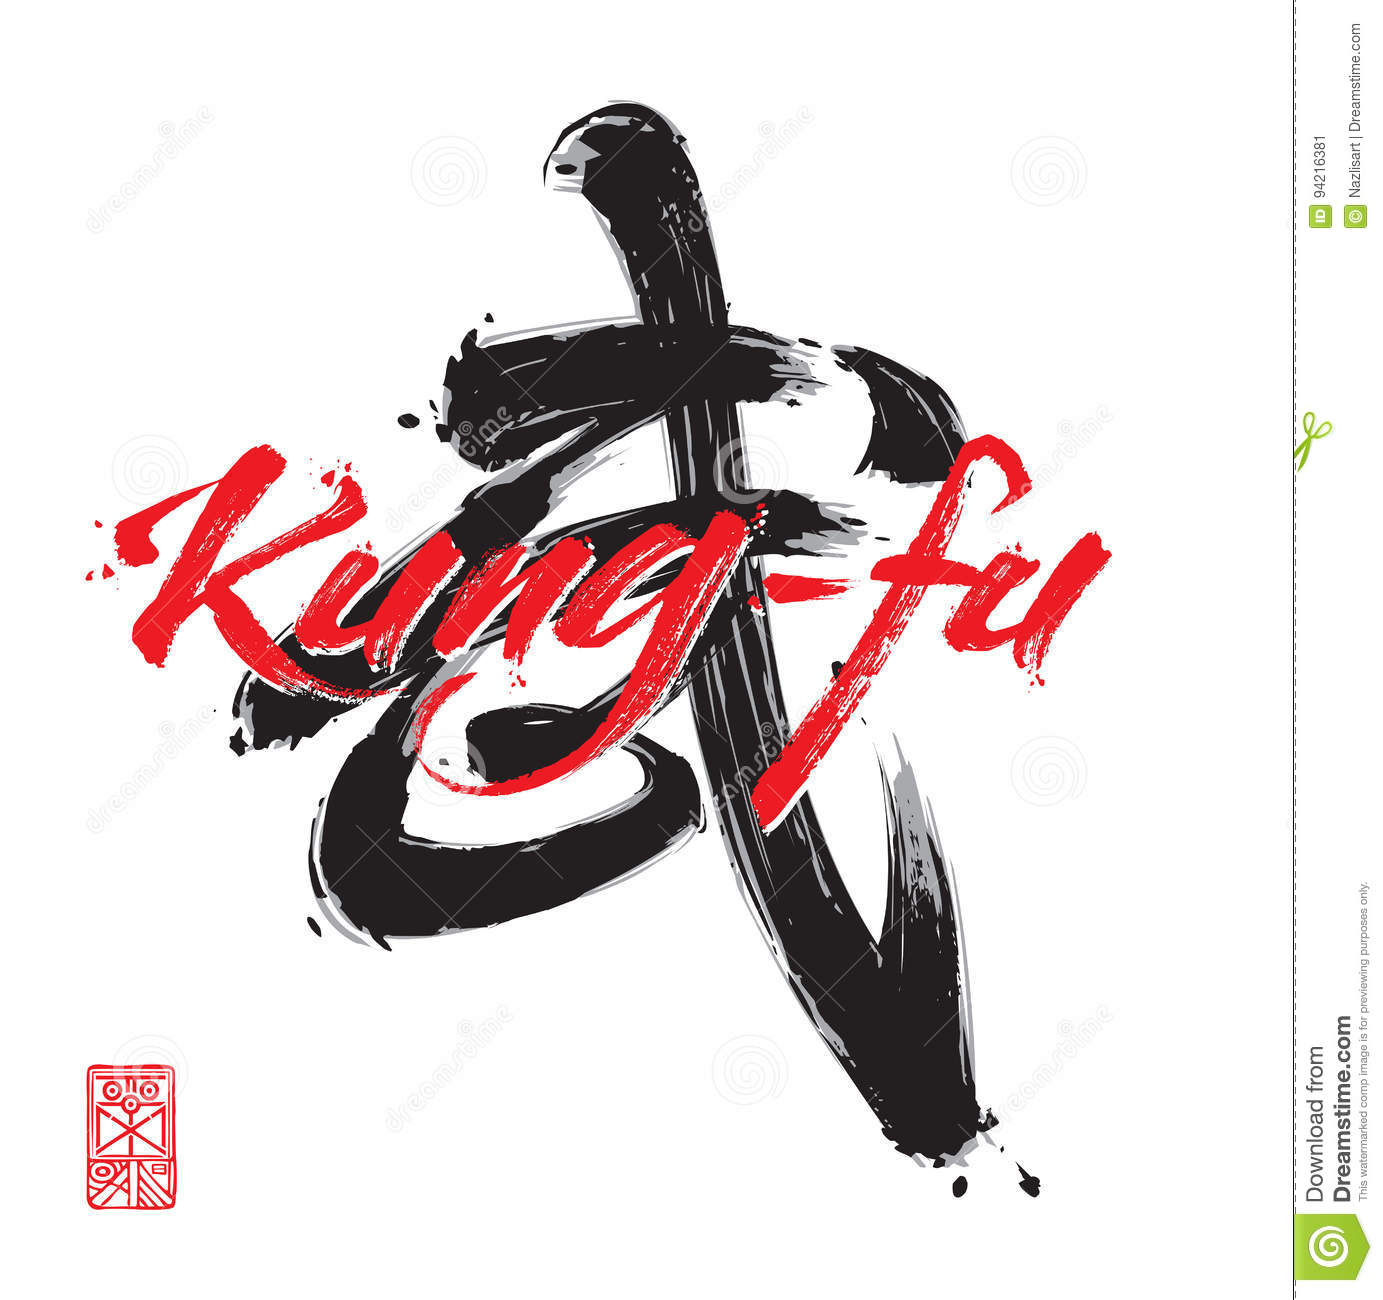 fu essay Essays published on yiquan academy site in years 1996-2010 by dacheng in types  books - non-fiction  health & lifestyle, wushu, and kung fu.